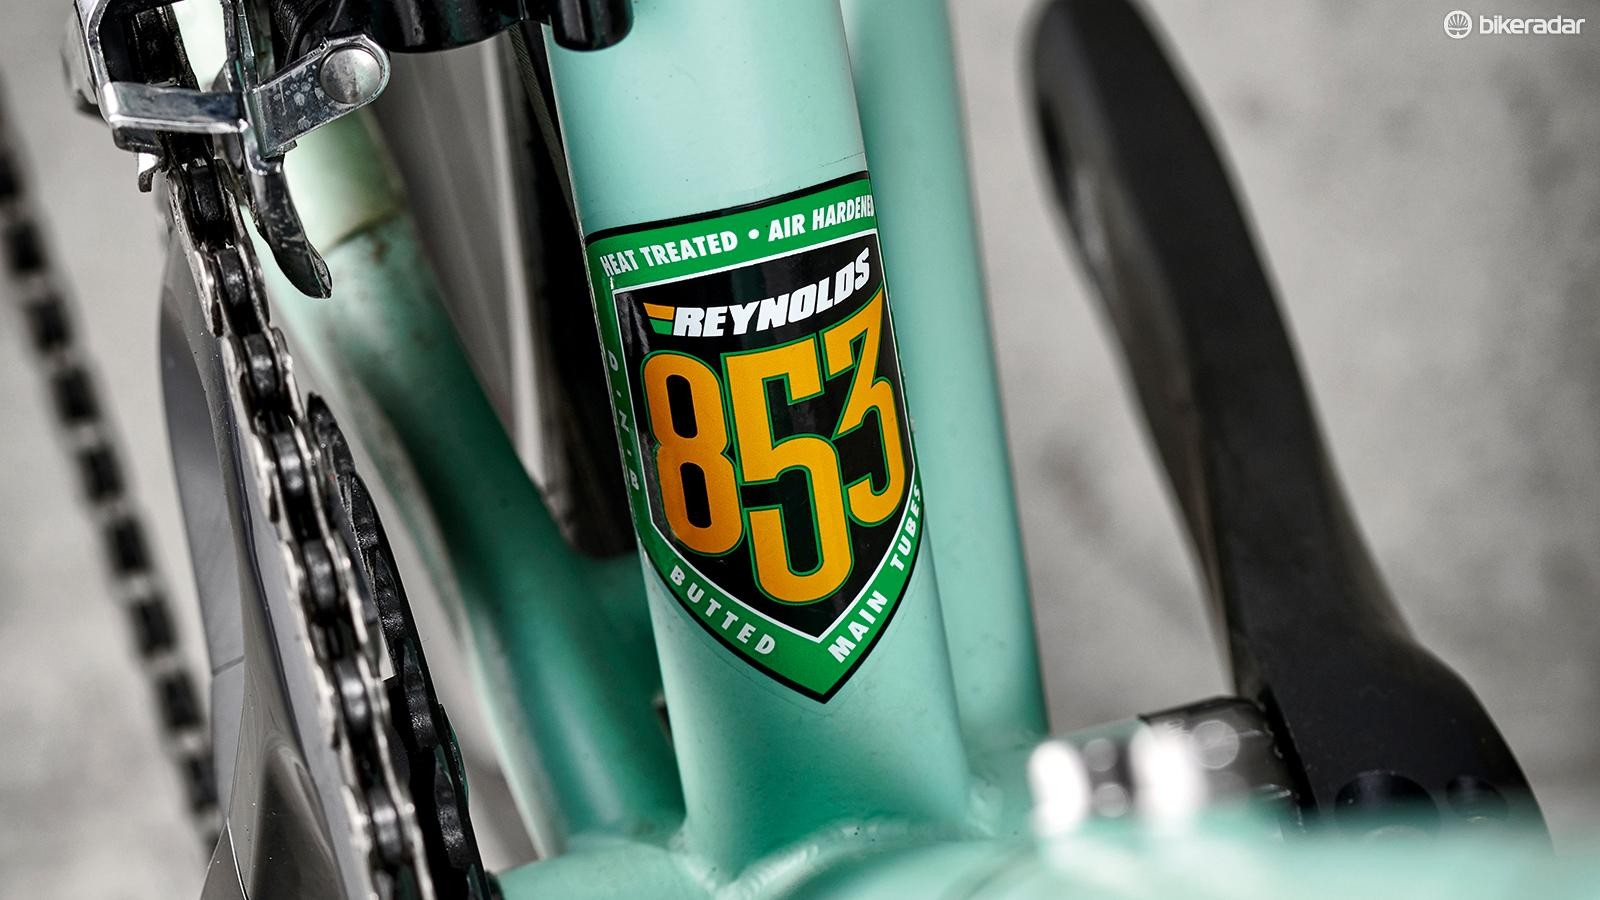 Air-hardened and heat-treated Reynolds 853 steel makes for a strong frame